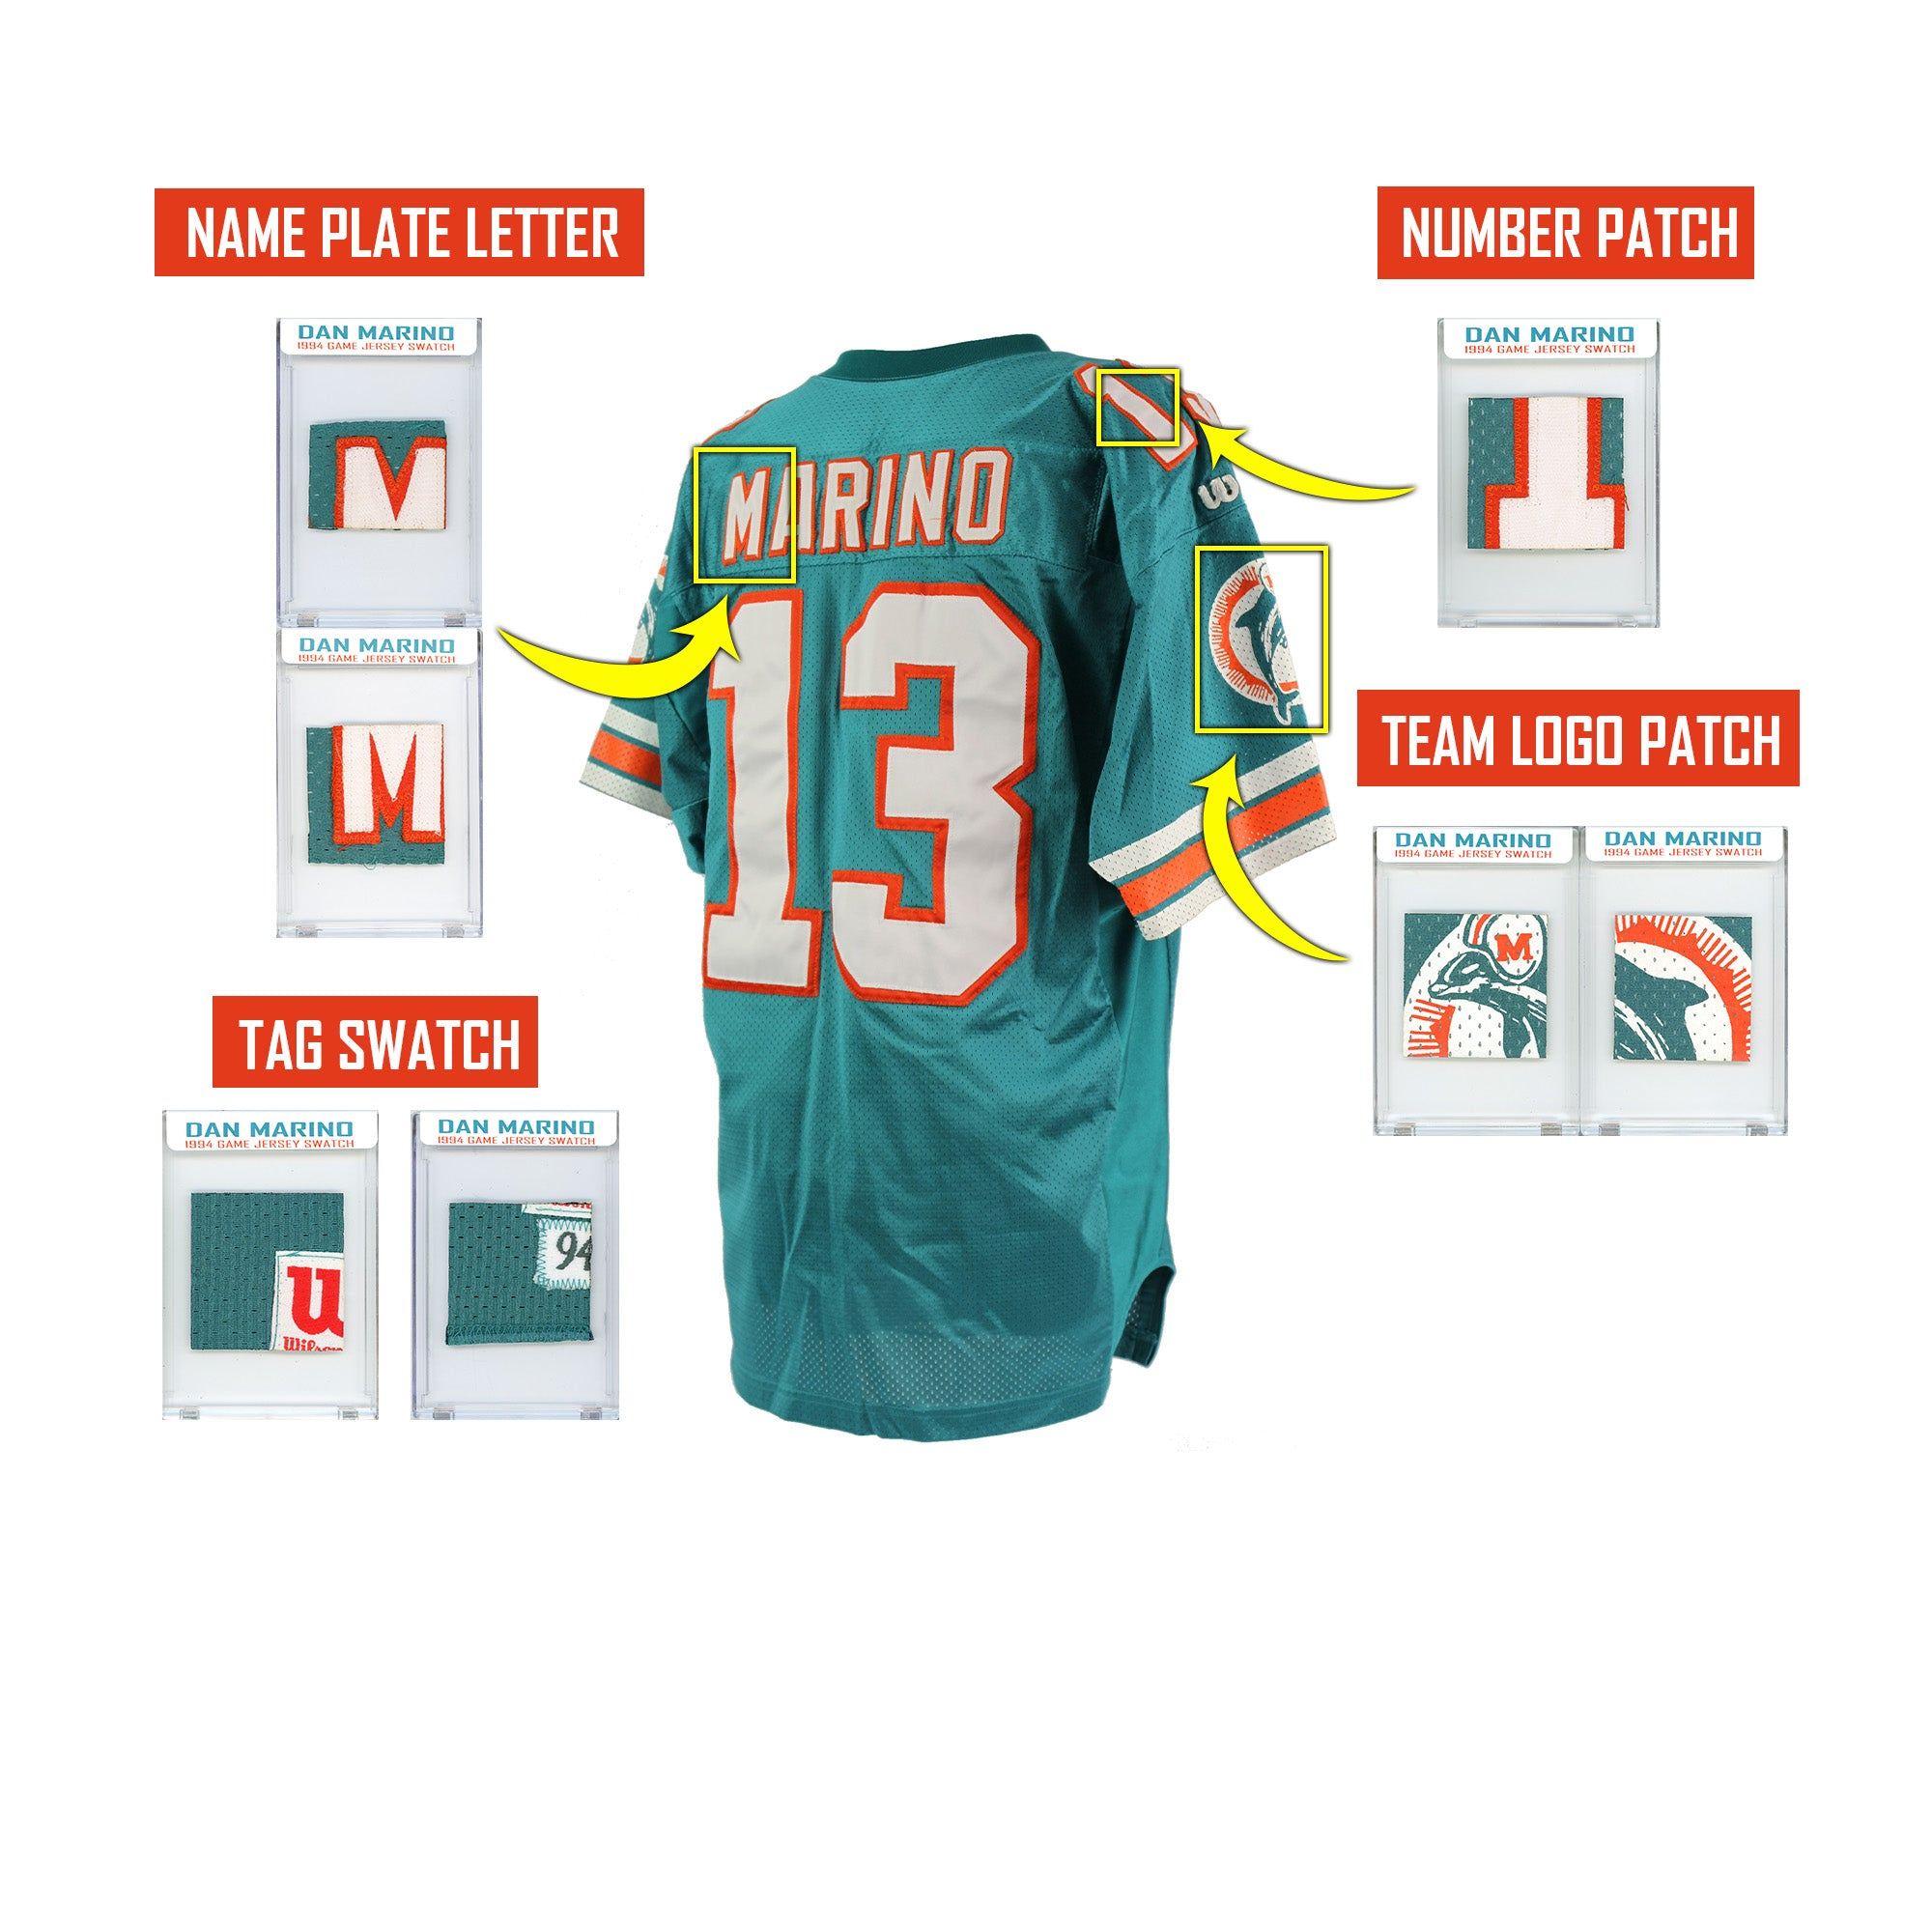 DAN MARINO 1994 DOLPHINS GAME WORN JERSEY MYSTERY SEALED SWATCH BOX!